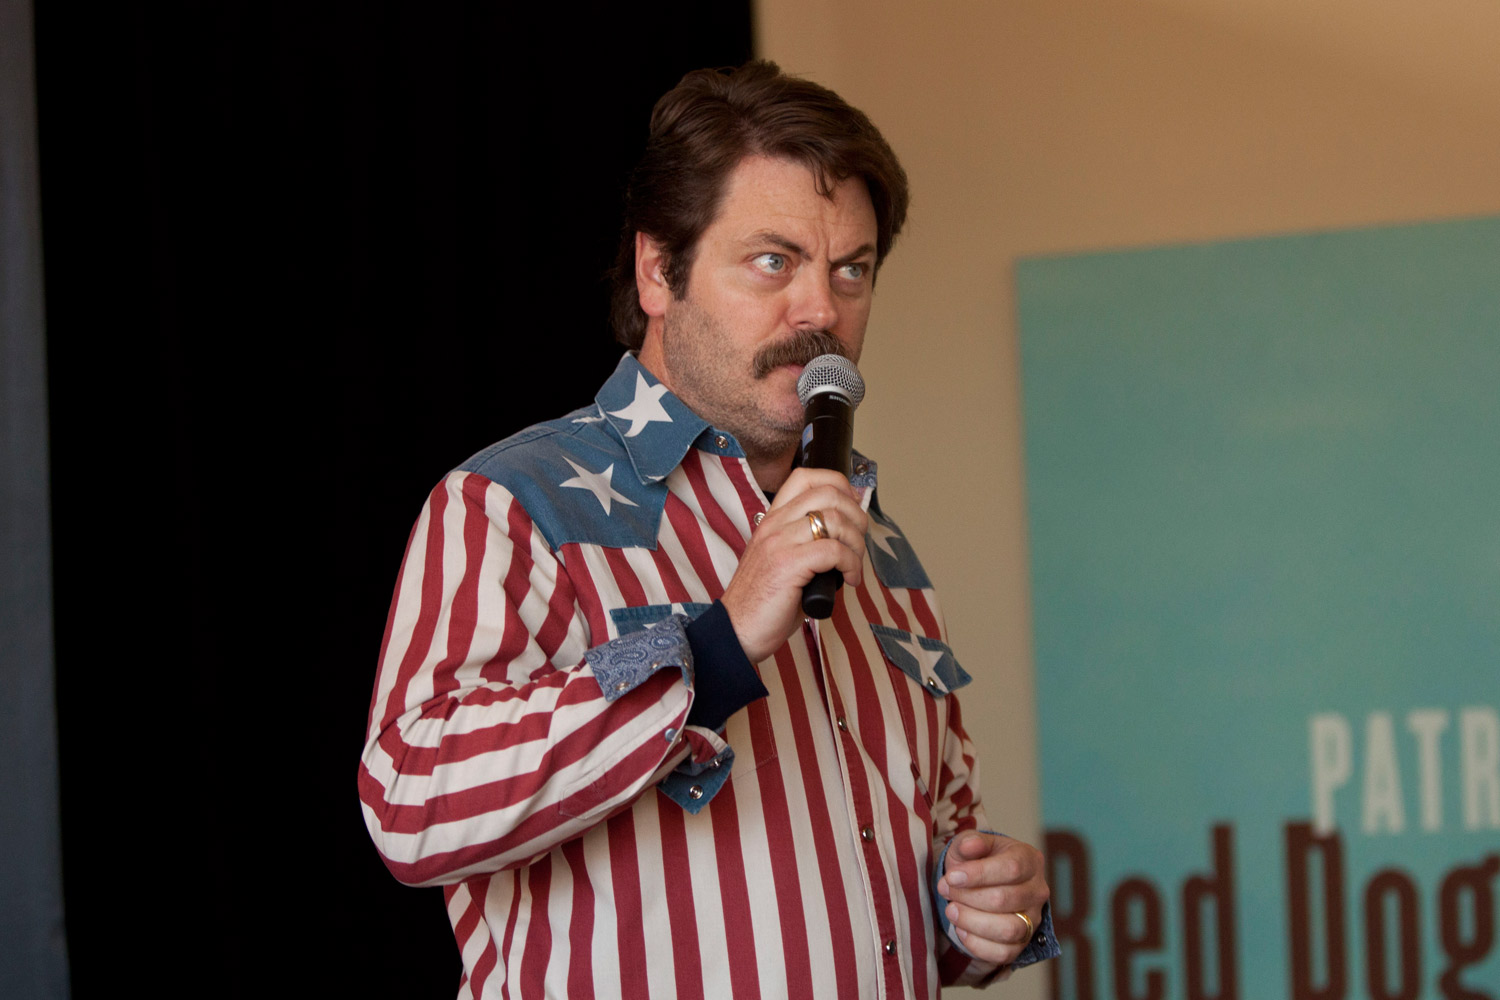 Actor Nick Offerman from Parks and Recreation, a respected  mustached American